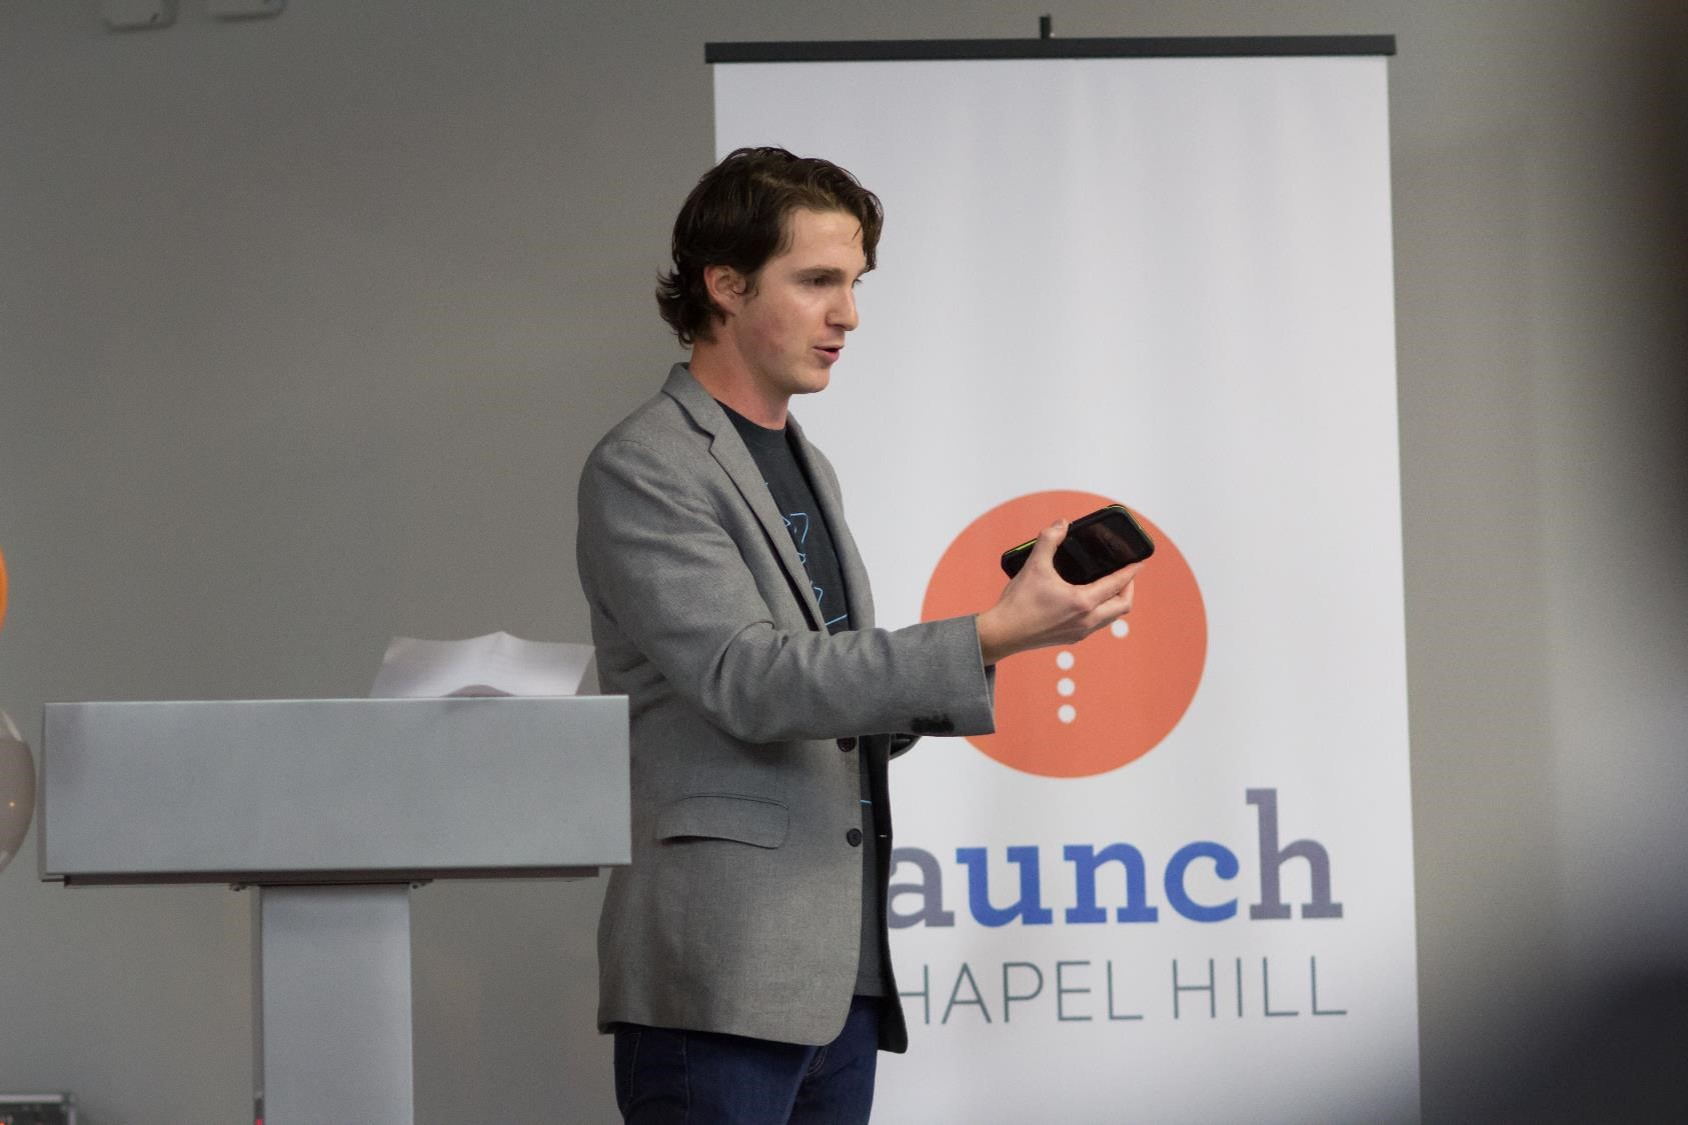 Alain Glanzman, co-founder of WalletFi, describes his company's experience after graduating from startup accelerator Launch Chapel Hill.